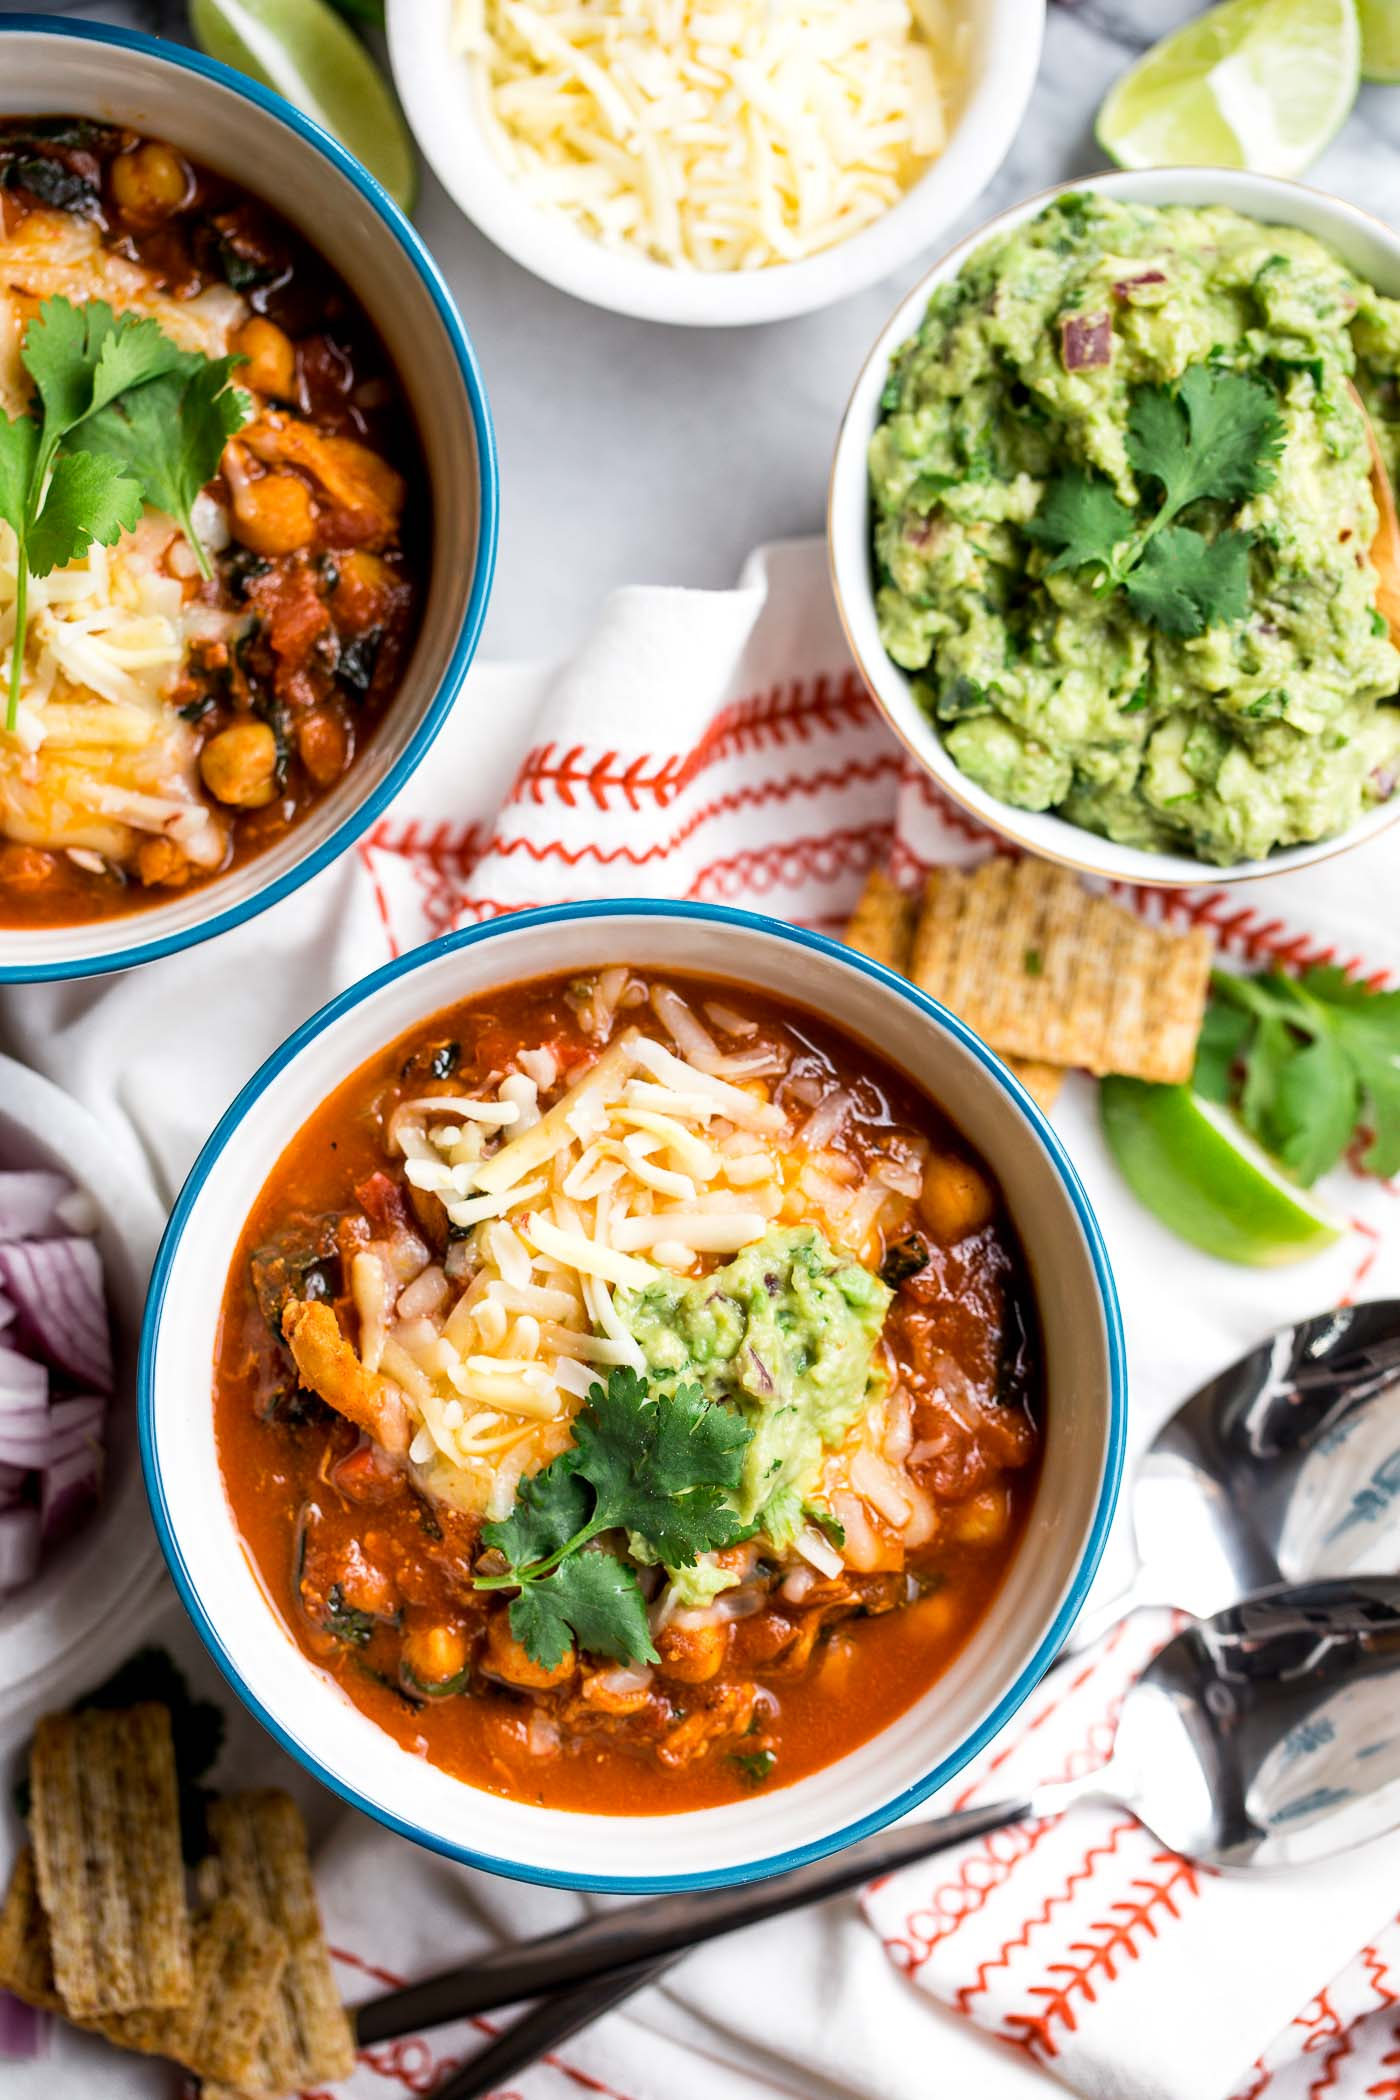 chipotle turkey chili is healthy, comforting, & full of modern flare - smoky heat of chipotle peppers, sweet bites of sweet potato, nutrient-dense kale, & a little touch of cinnamon for some warmth. the perfect cozy comfort food dinner to use up thanksgiving leftovers! #playswellwithbutter #chilirecipe #turkey #comfortfood #thanksgivingleftovers #leftoverturkey